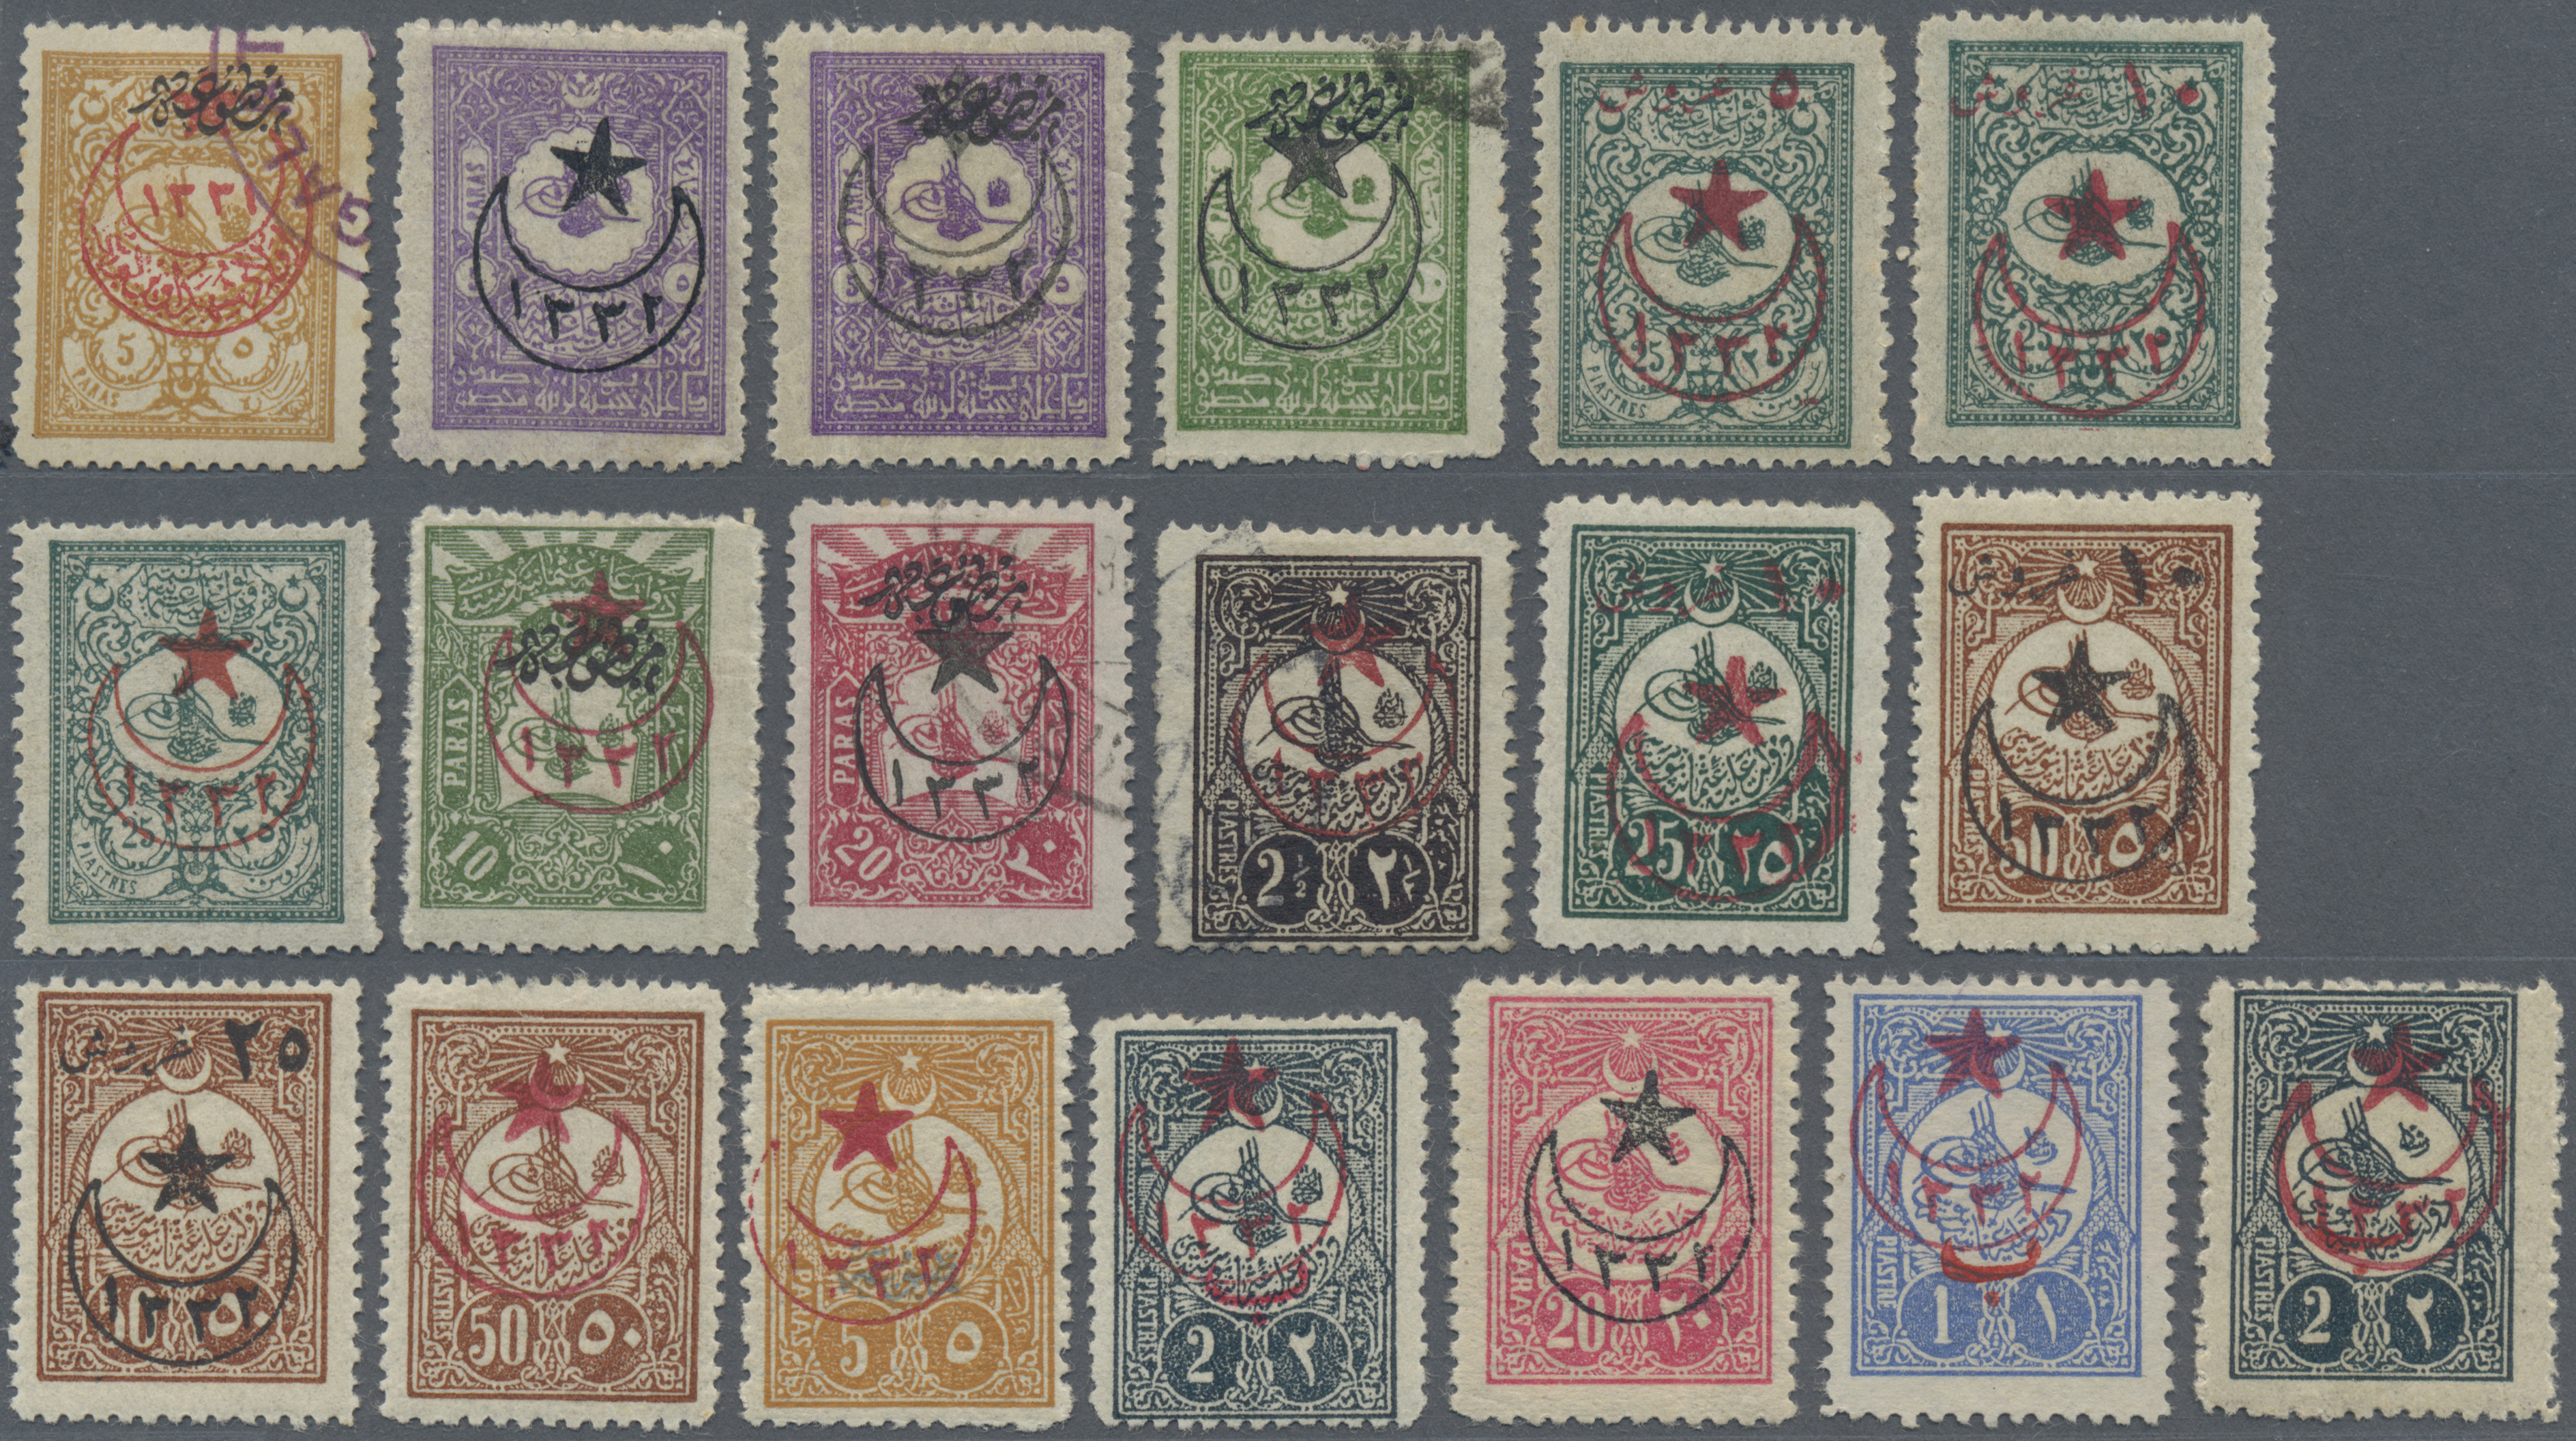 Lot 35089 - türkei  -  Auktionshaus Christoph Gärtner GmbH & Co. KG Sale #44 Collections Germany